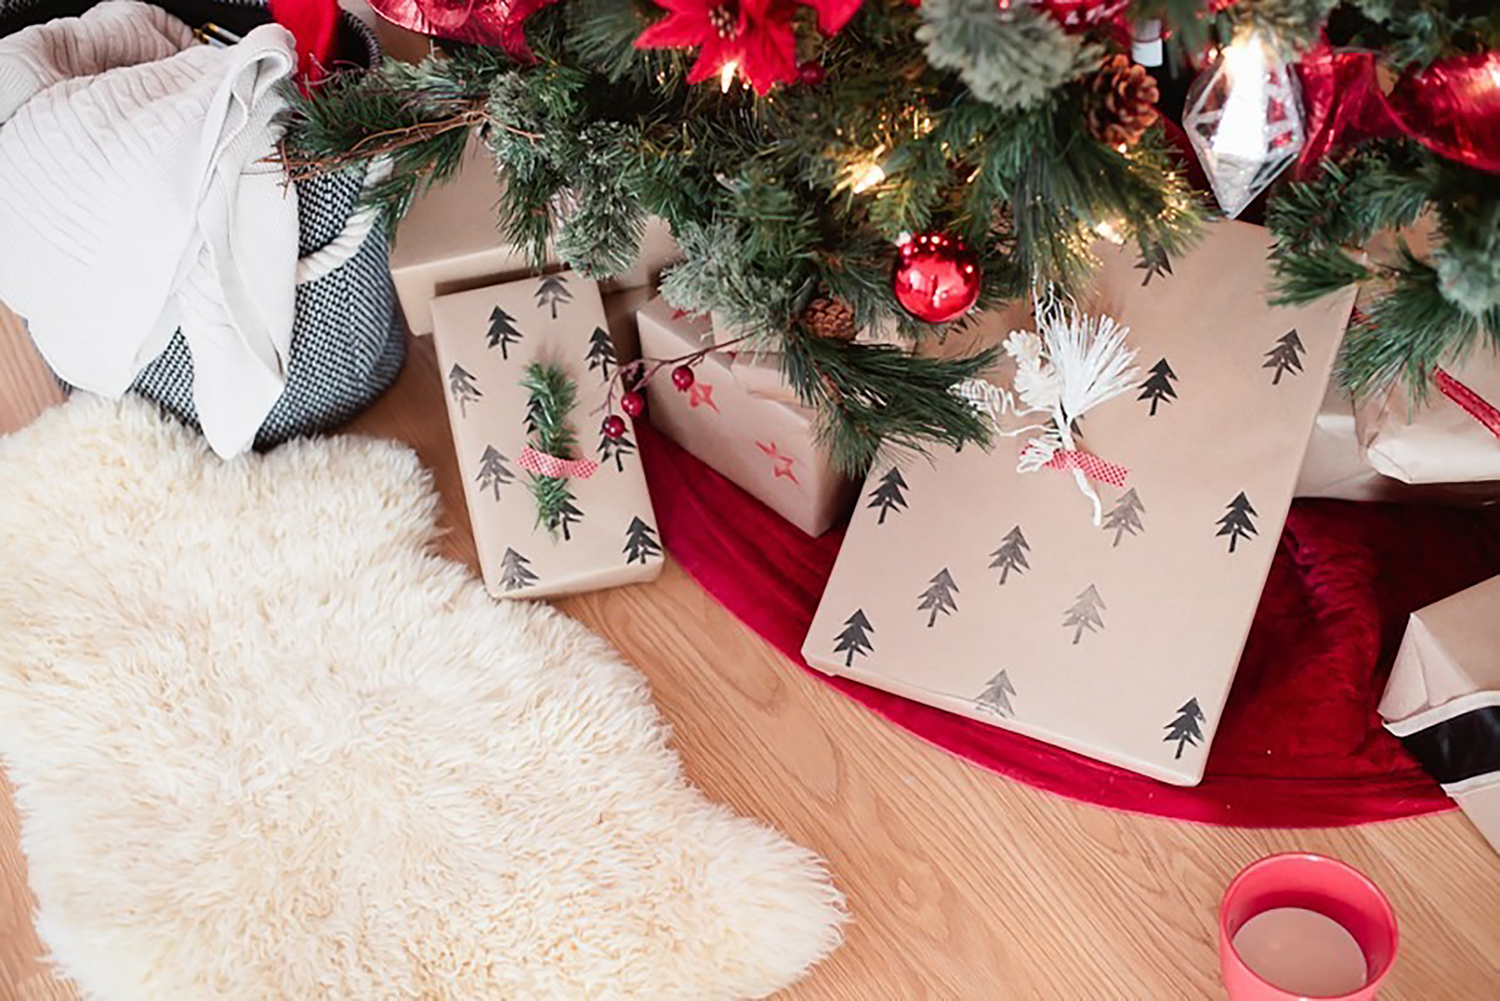 Christmas gifts wrapped with tree stamps on under Christmas tree